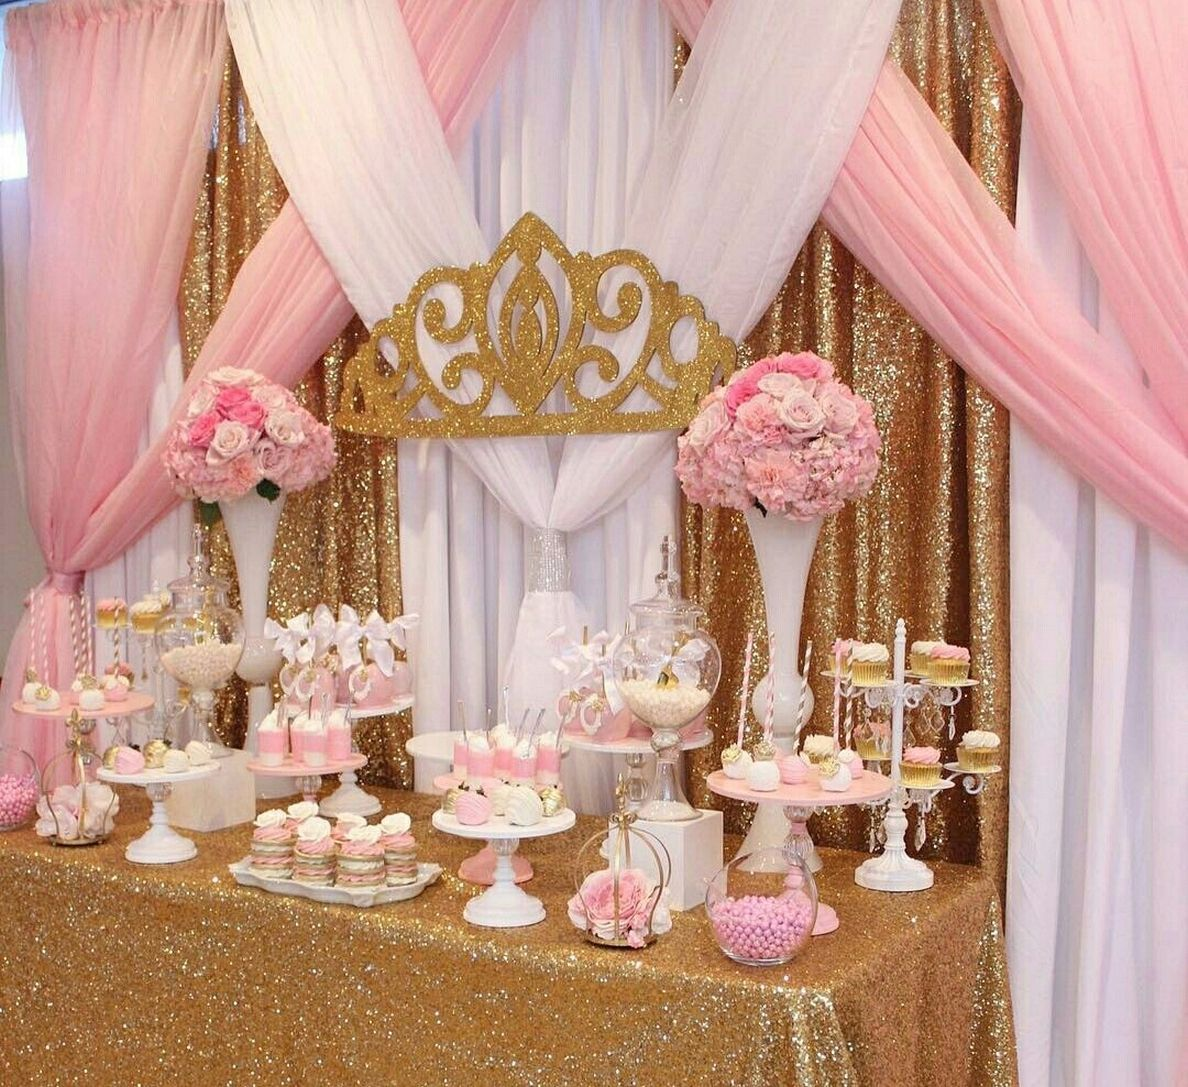 Best 100 quince decorations ideas for your party for Quinceanera decorations